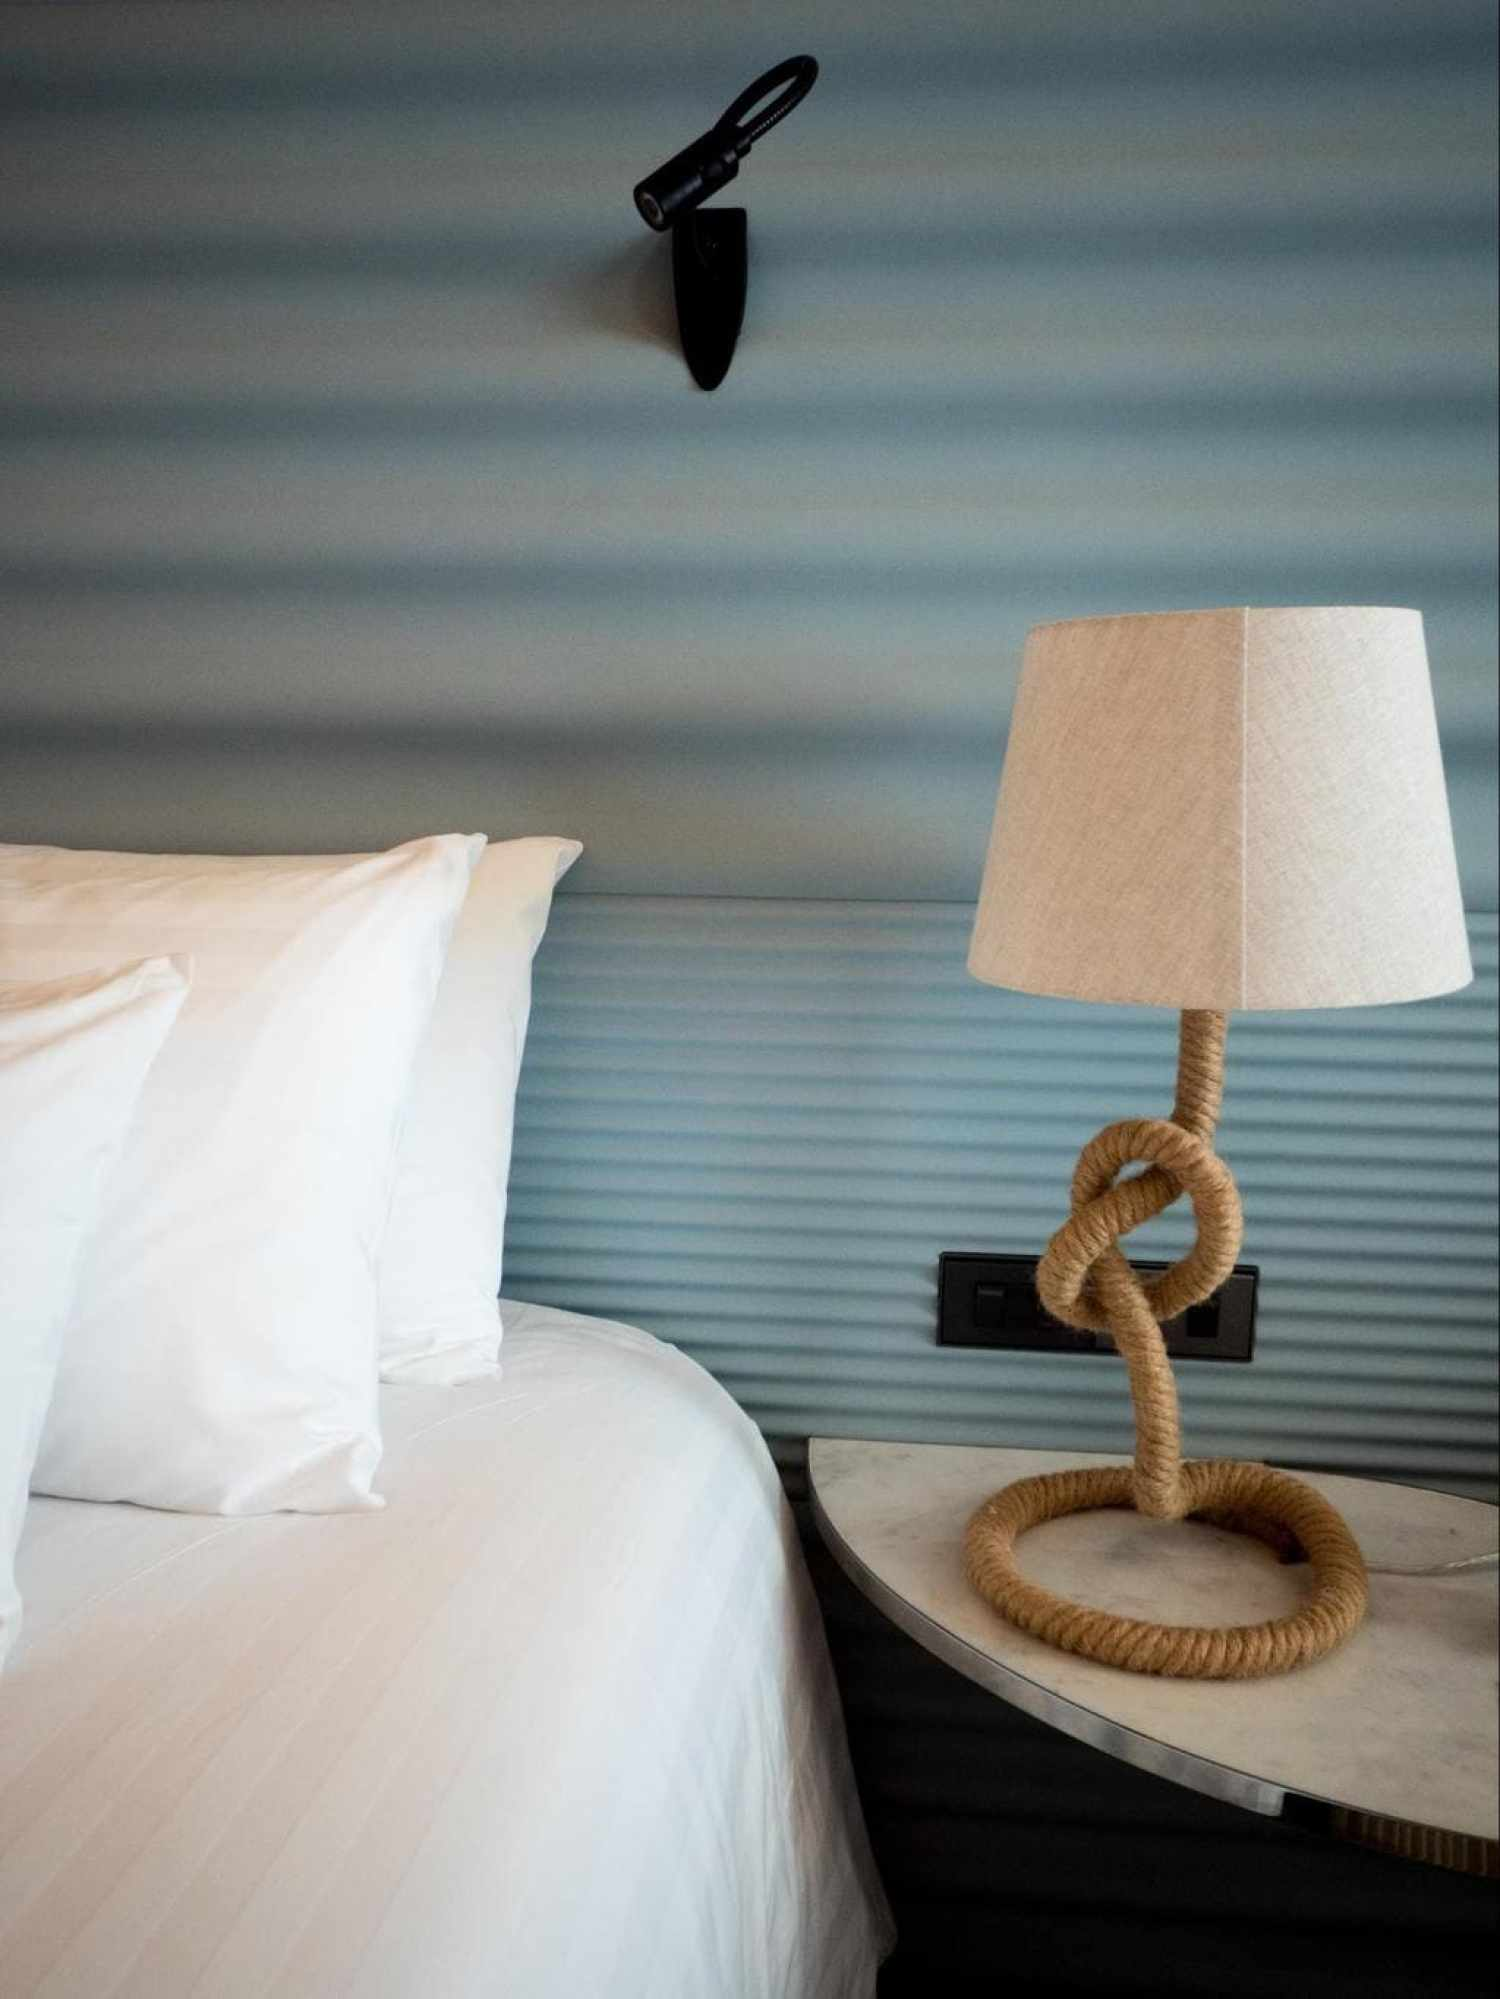 Maritime details in the rooms after the renovation